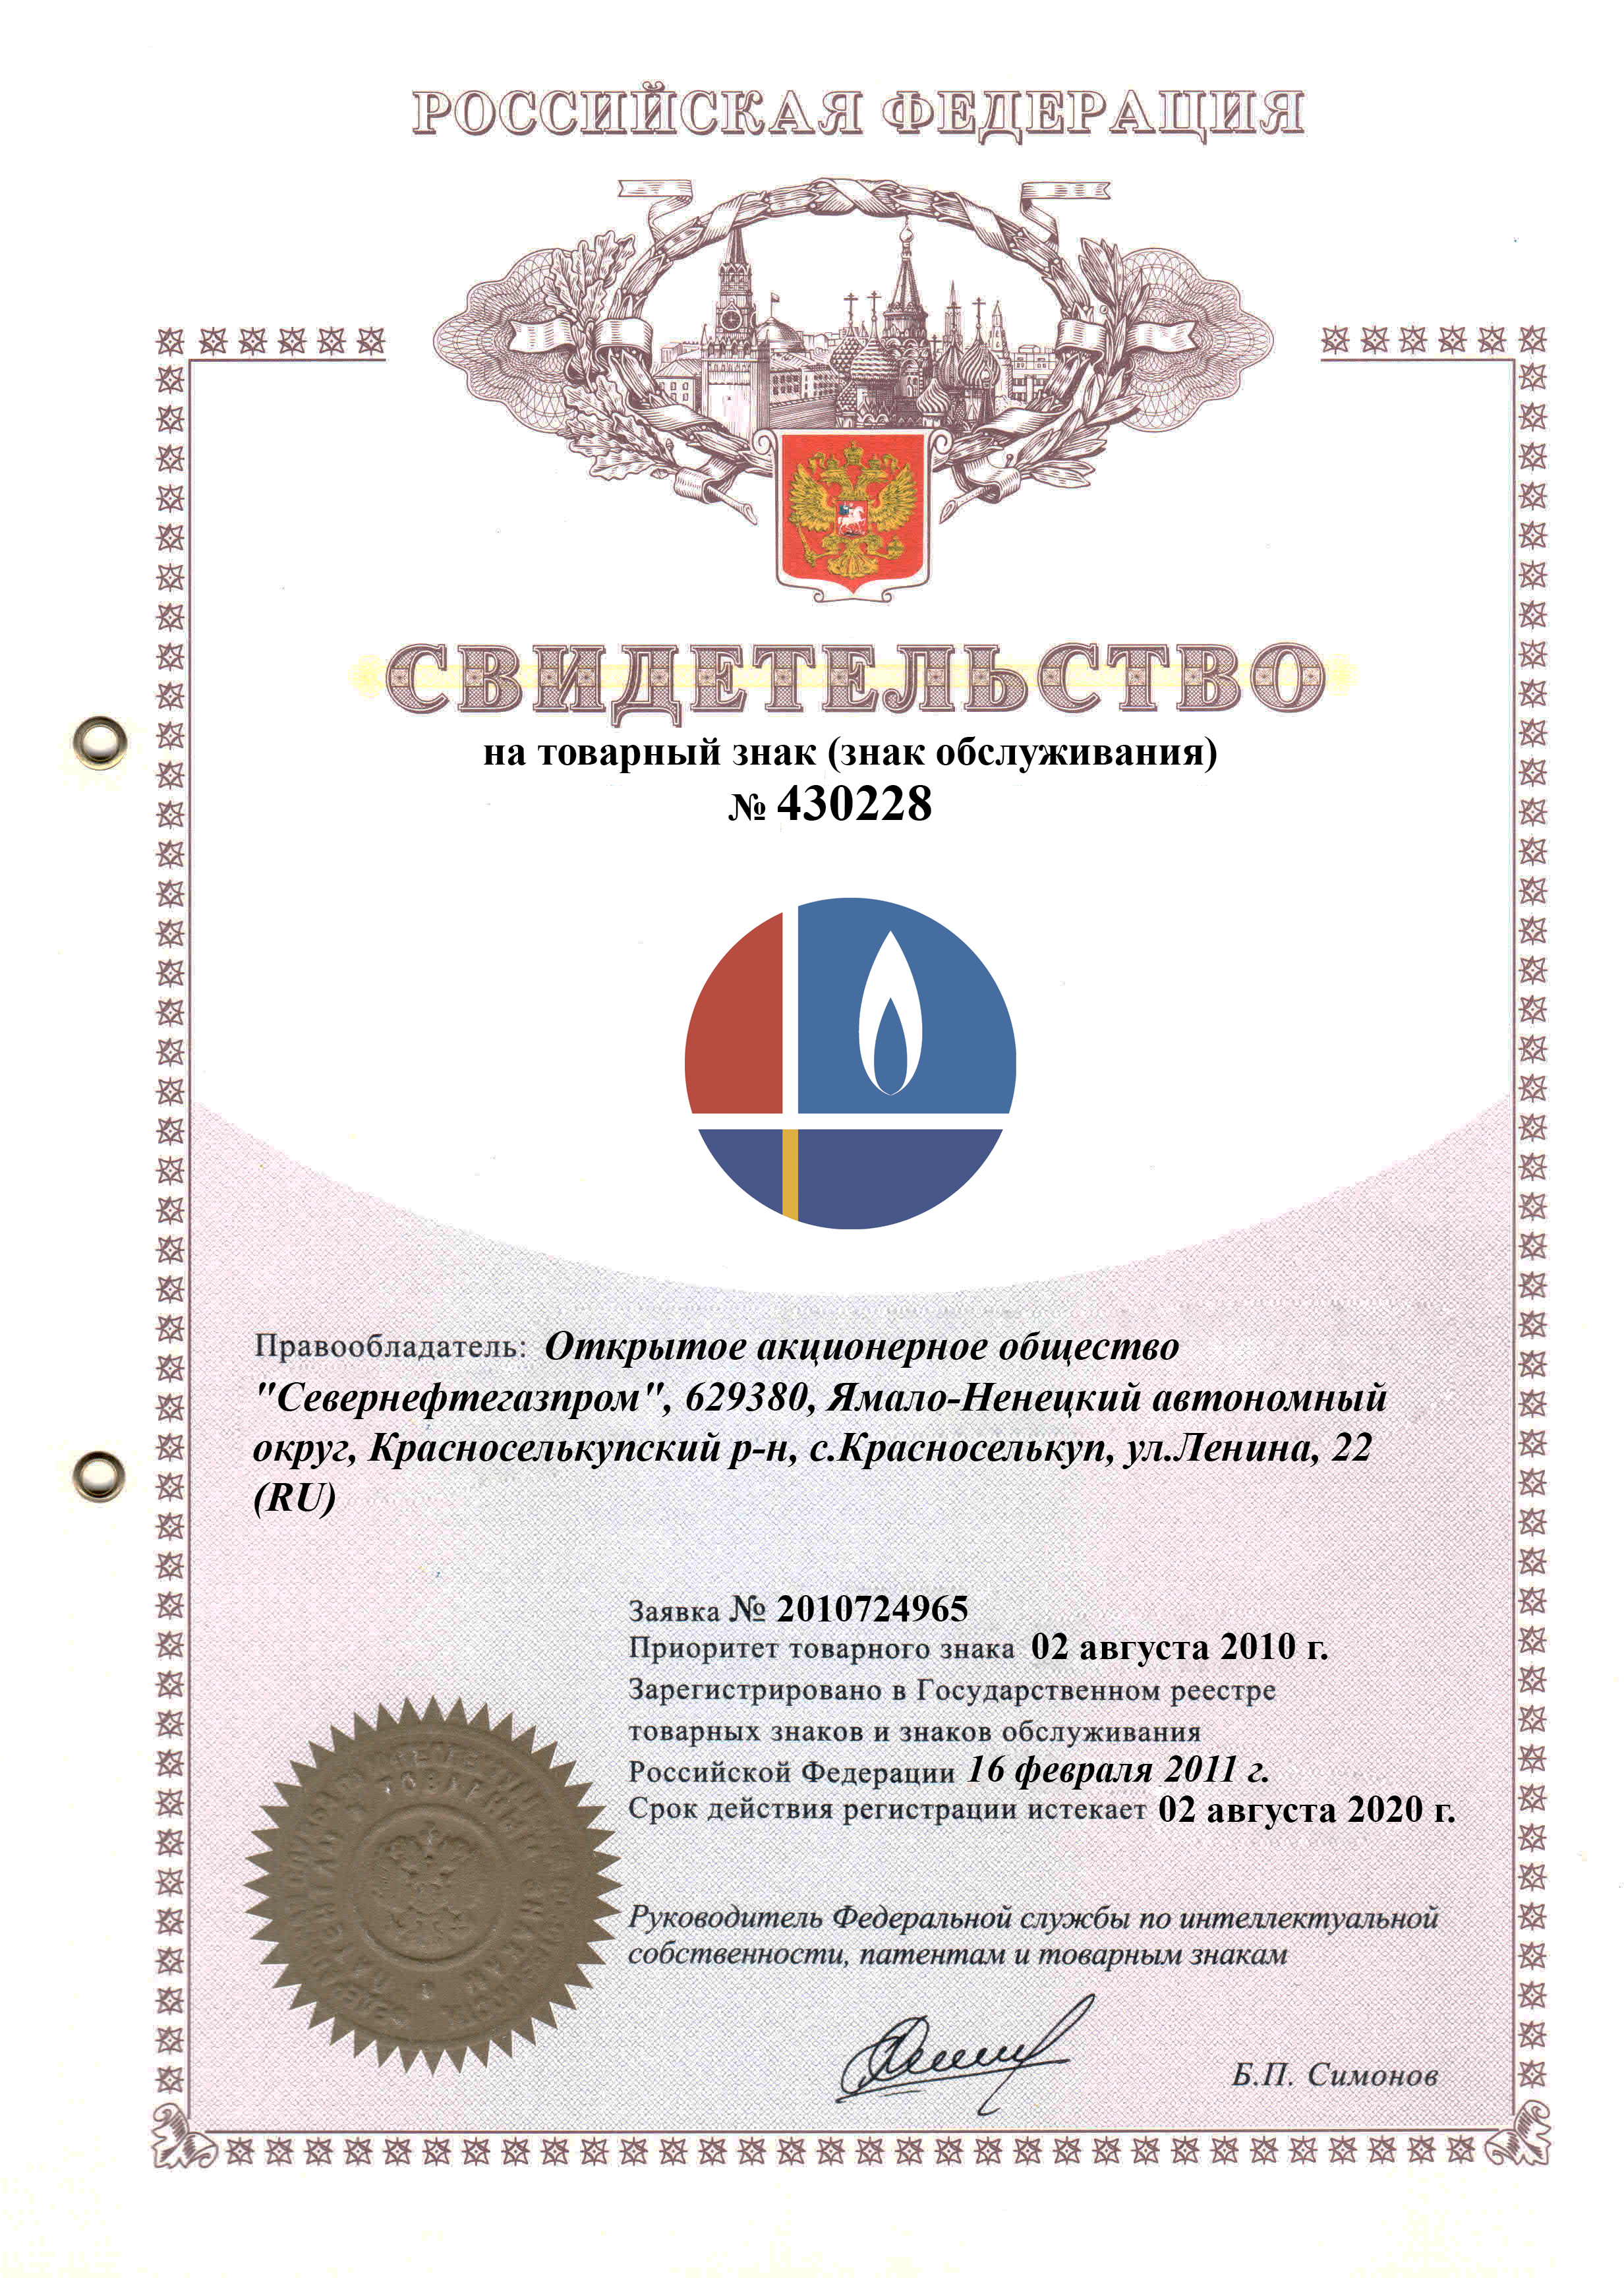 Certificate number 430228